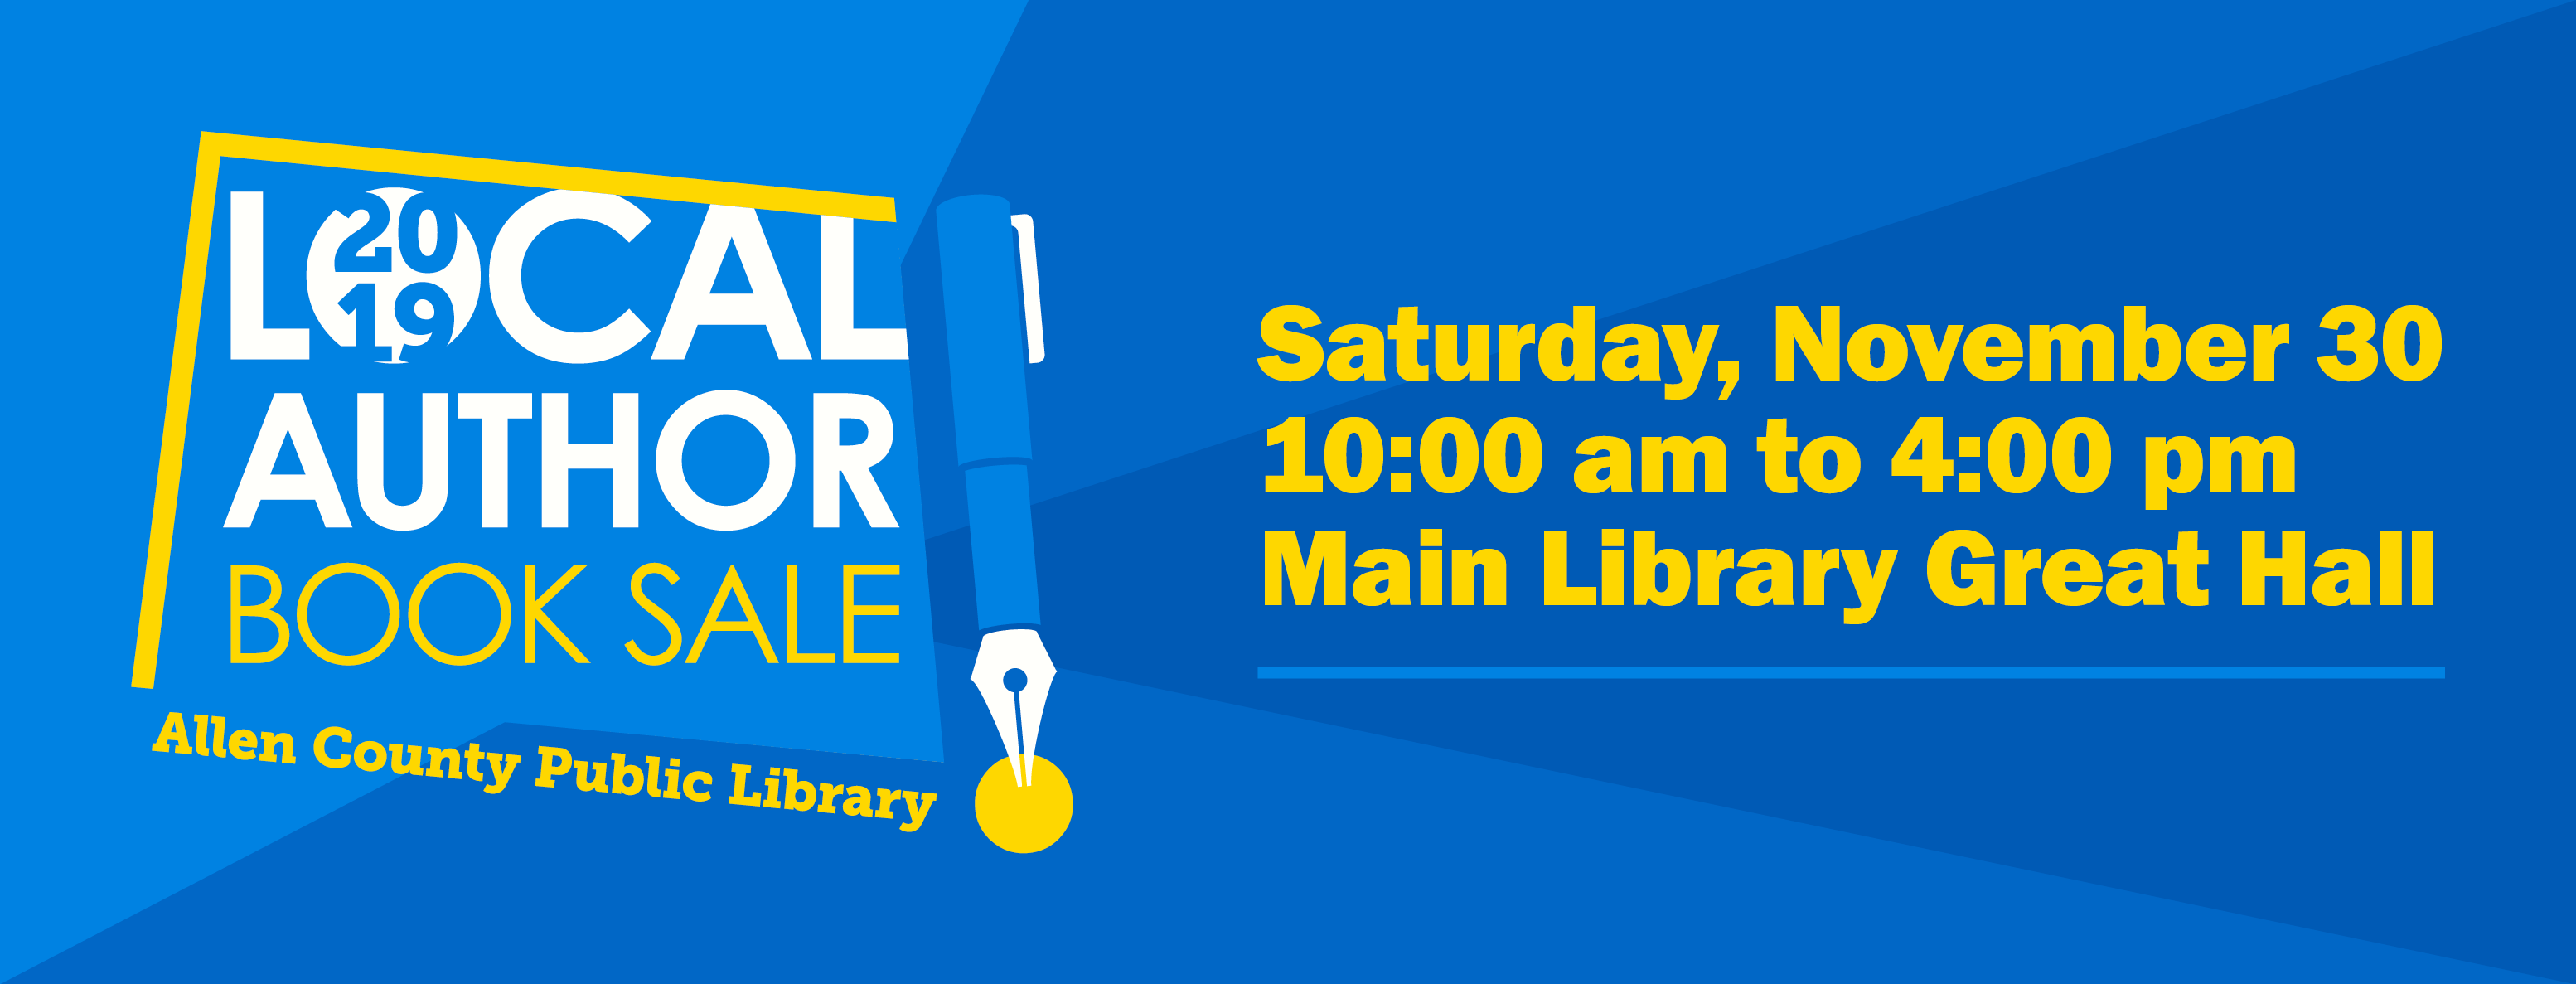 ACPL Local Author Book Sale